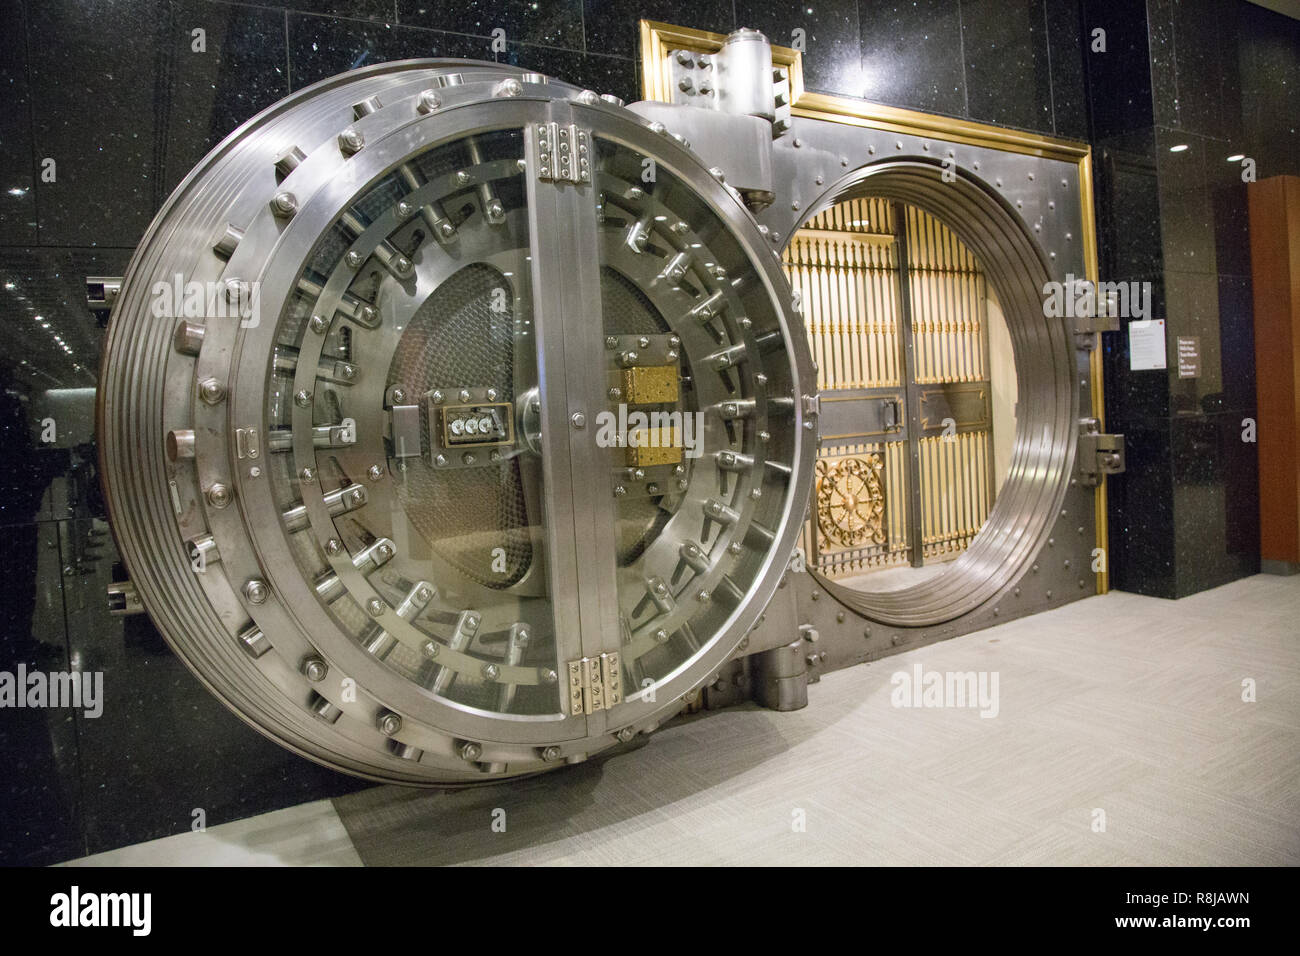 Wells Fargo Bank Vault, Houston, Texas - Stock Image